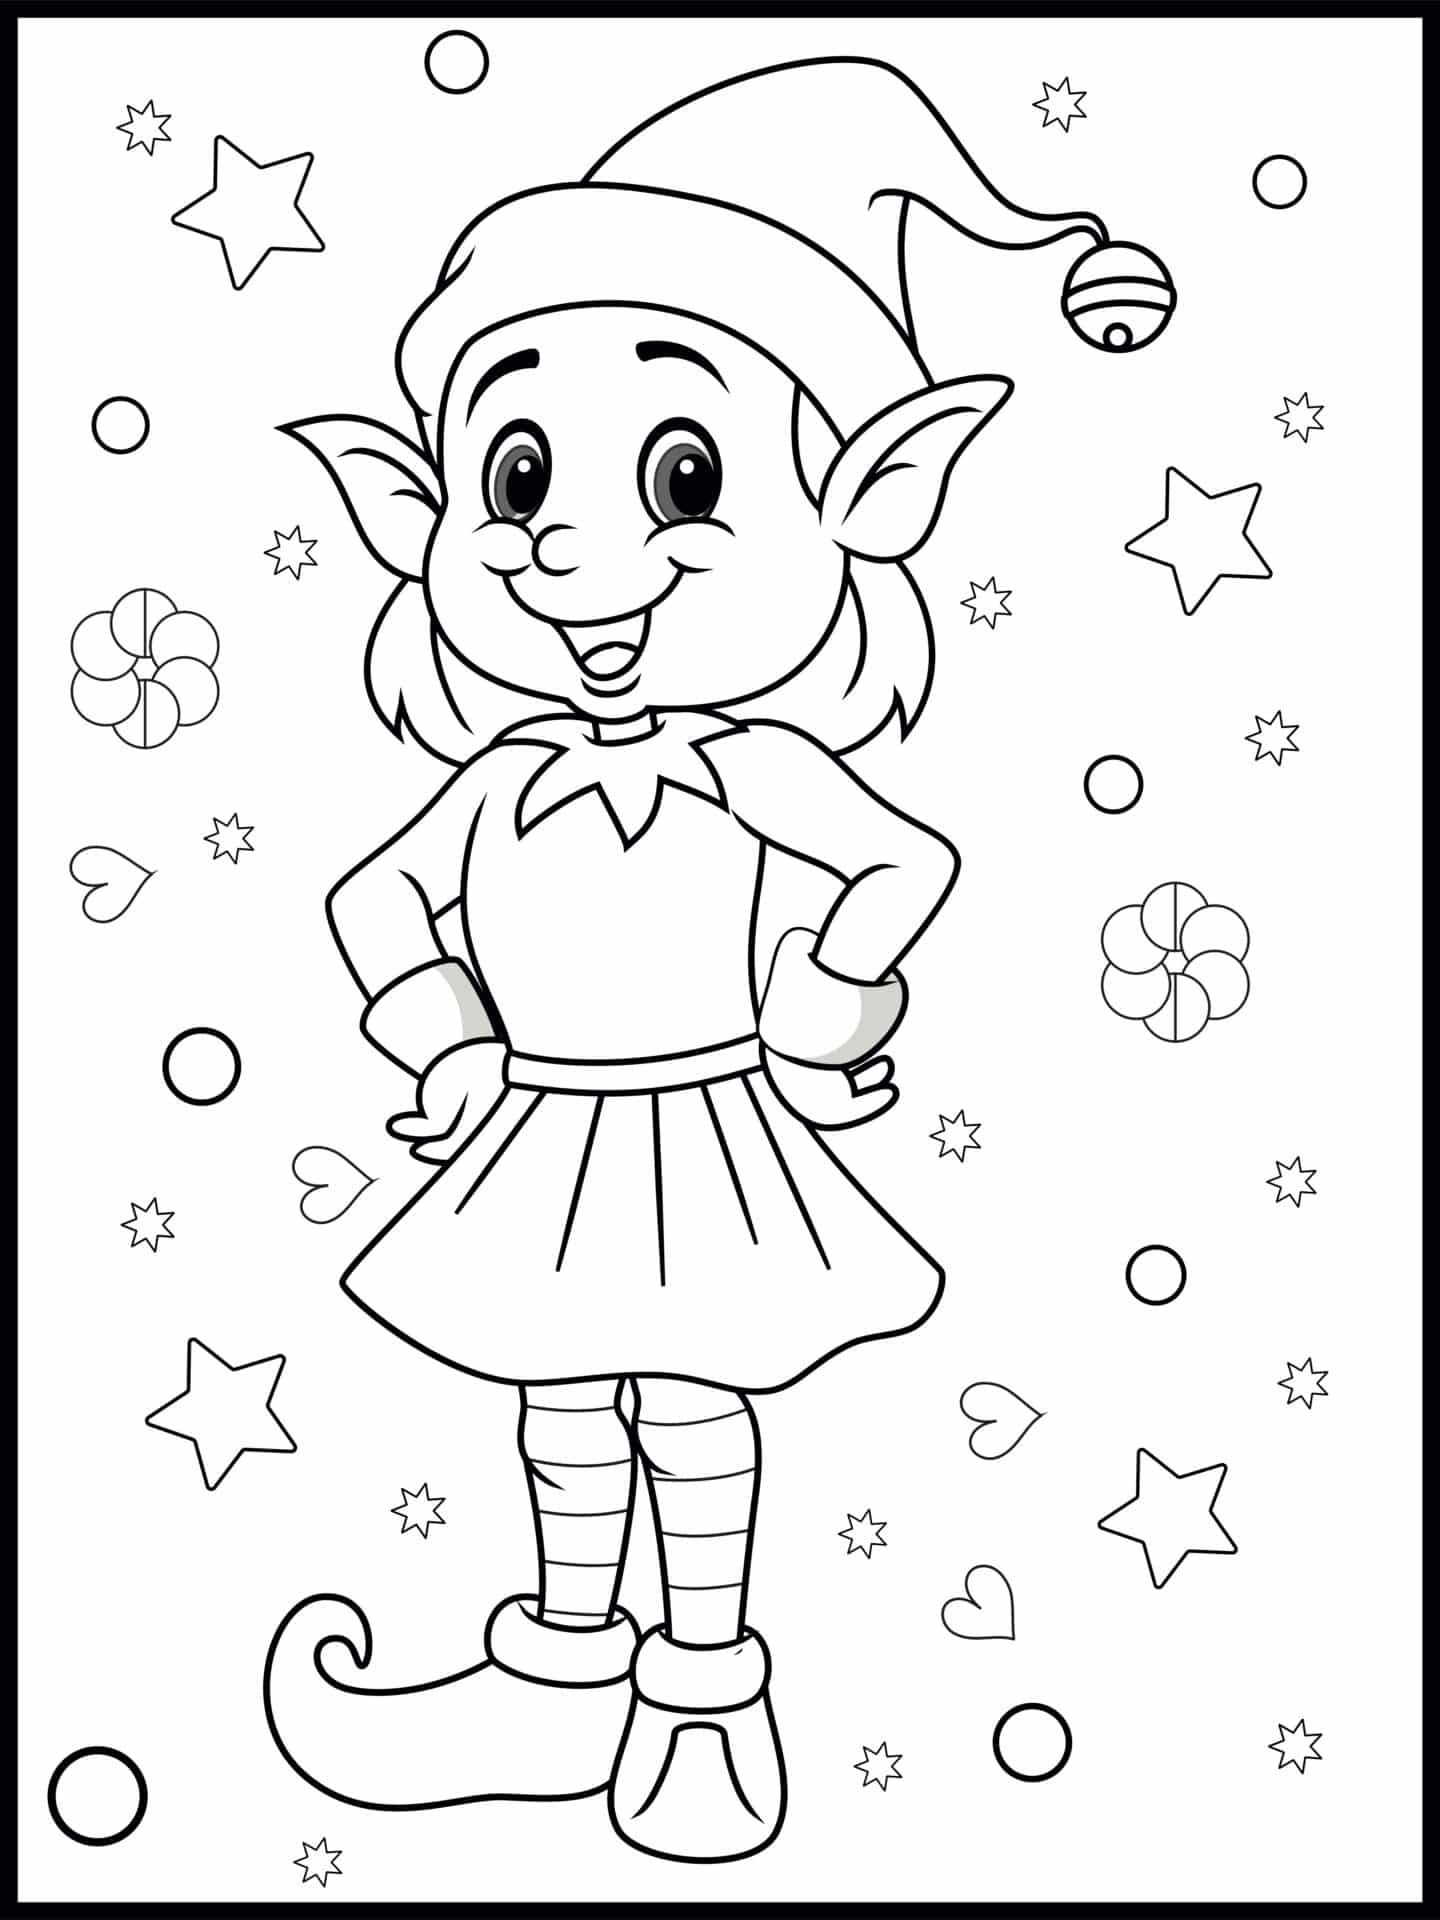 Free Christmas Colouring Activity Pages For Kids The Mummy Bubble